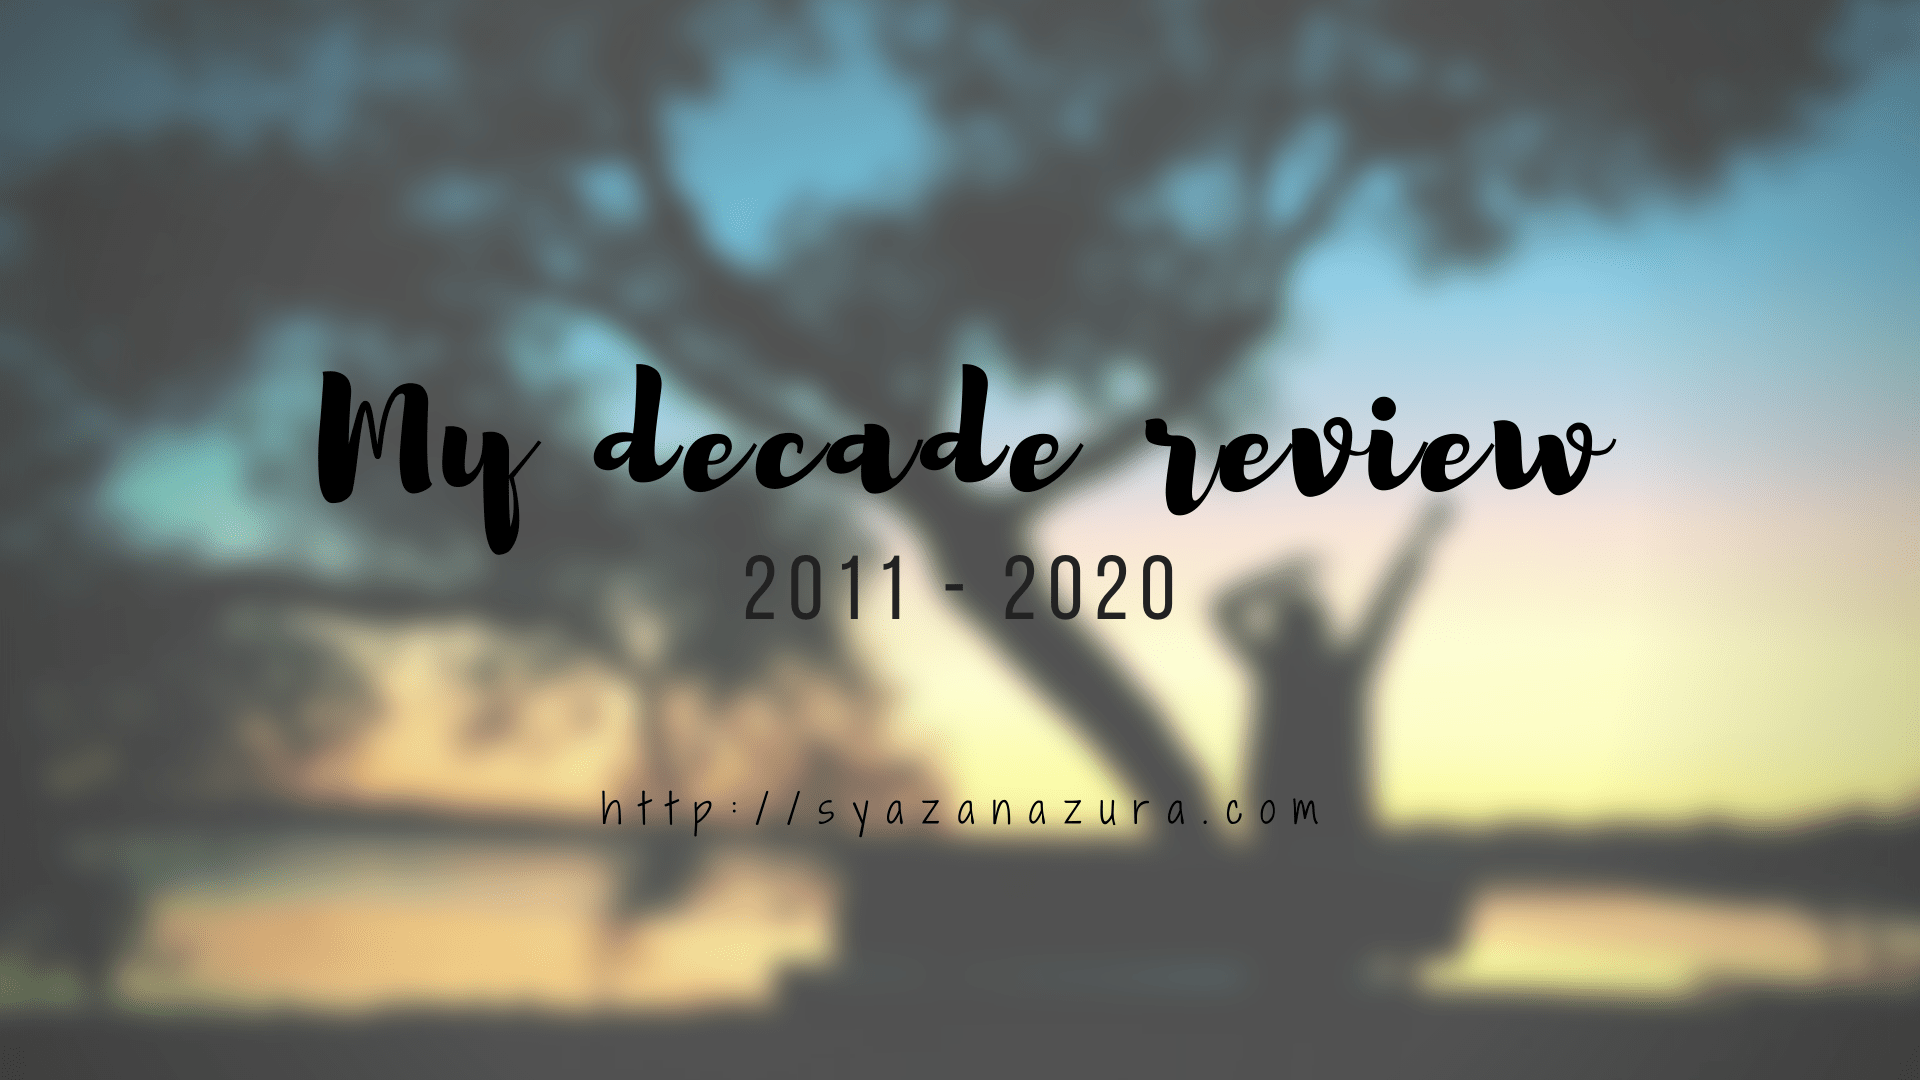 My decade review [2011-2020]